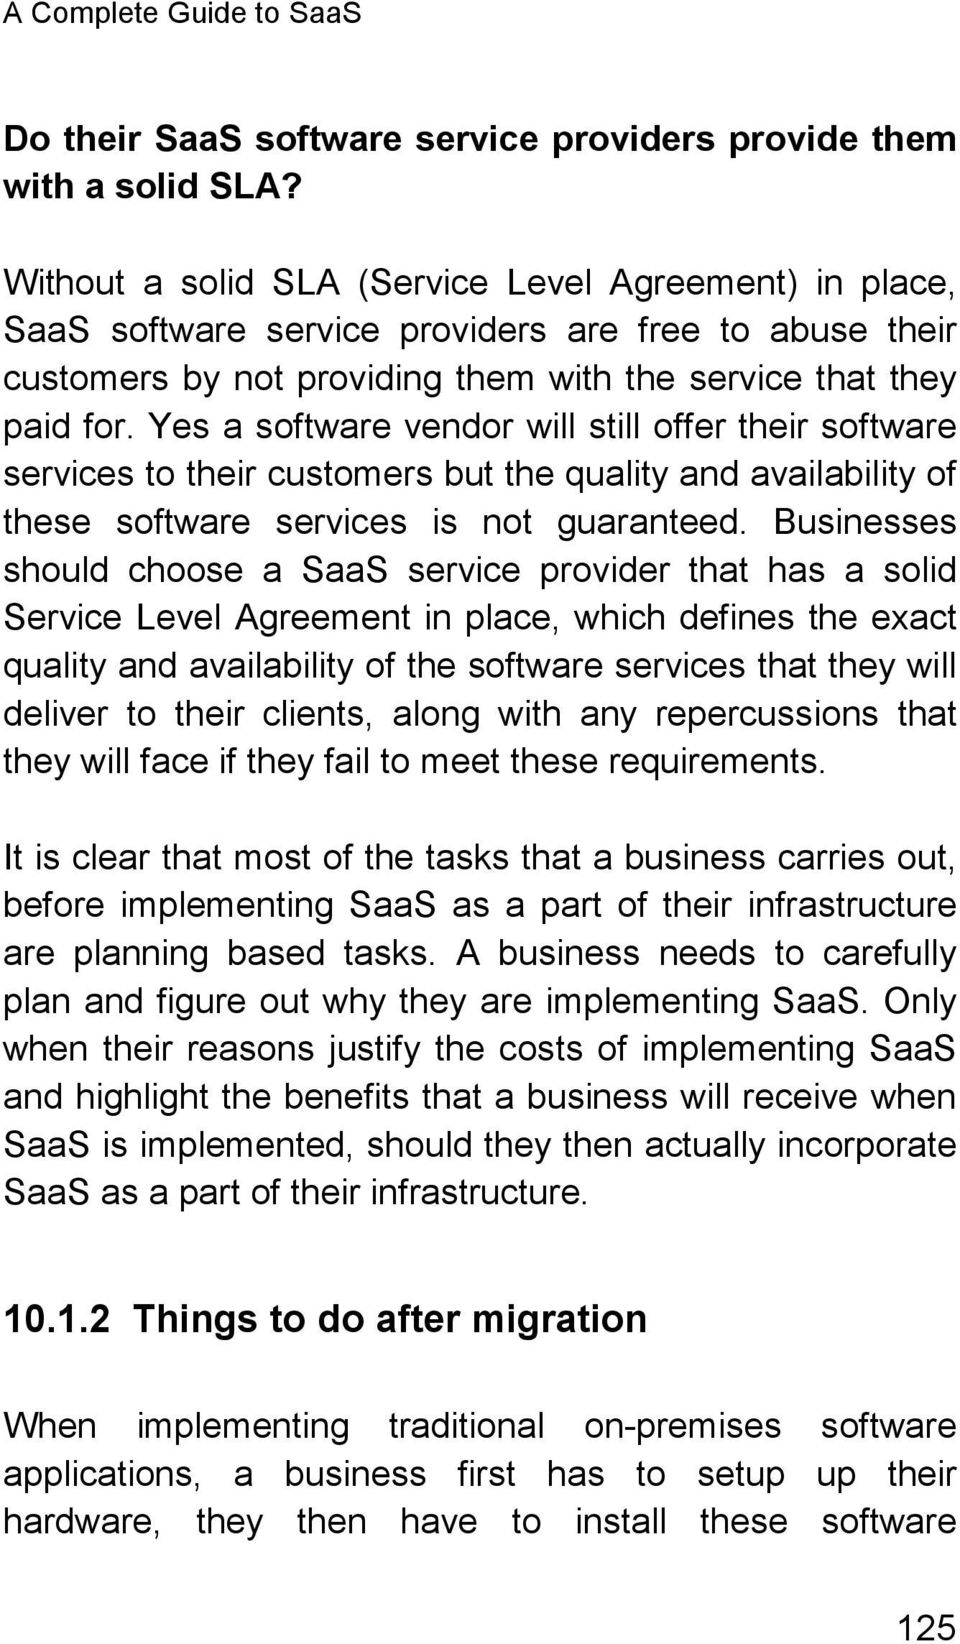 Yes a software vendor will still offer their software services to their customers but the quality and availability of these software services is not guaranteed.